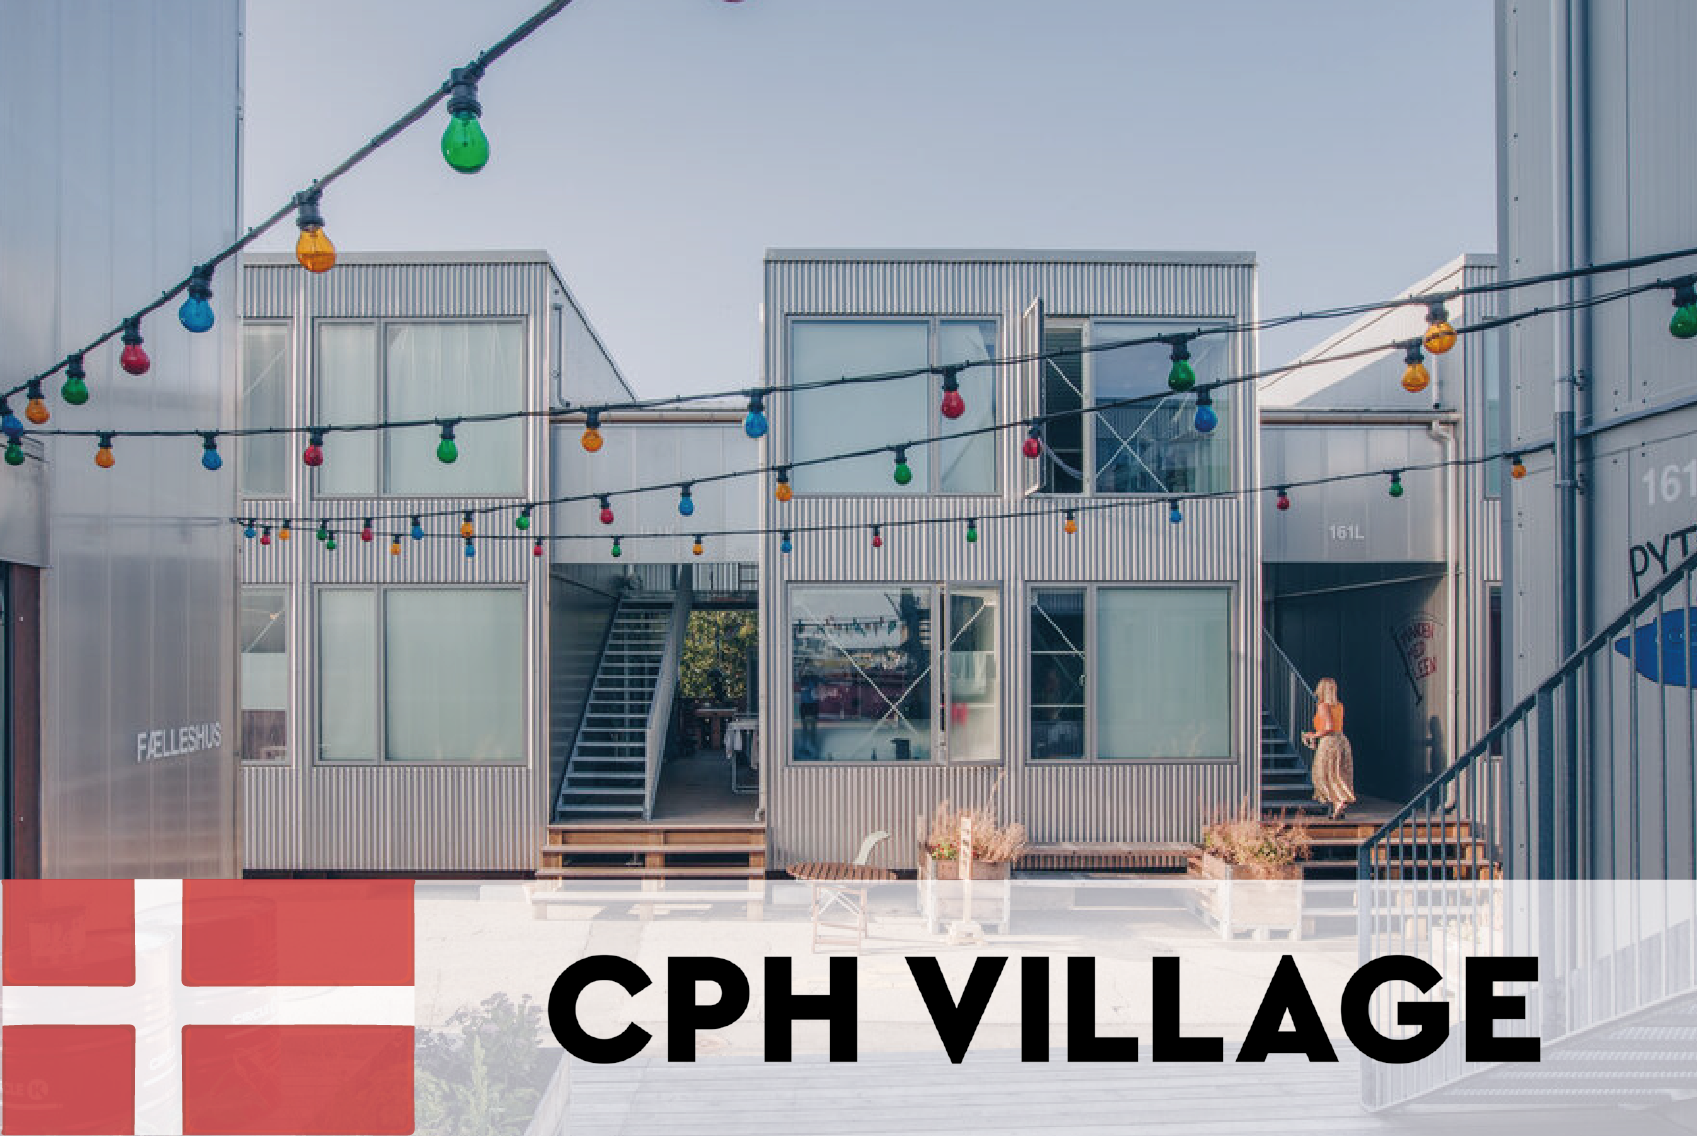 #58 CPH Village – From shipping containers to livable communities - CIRCit Nord